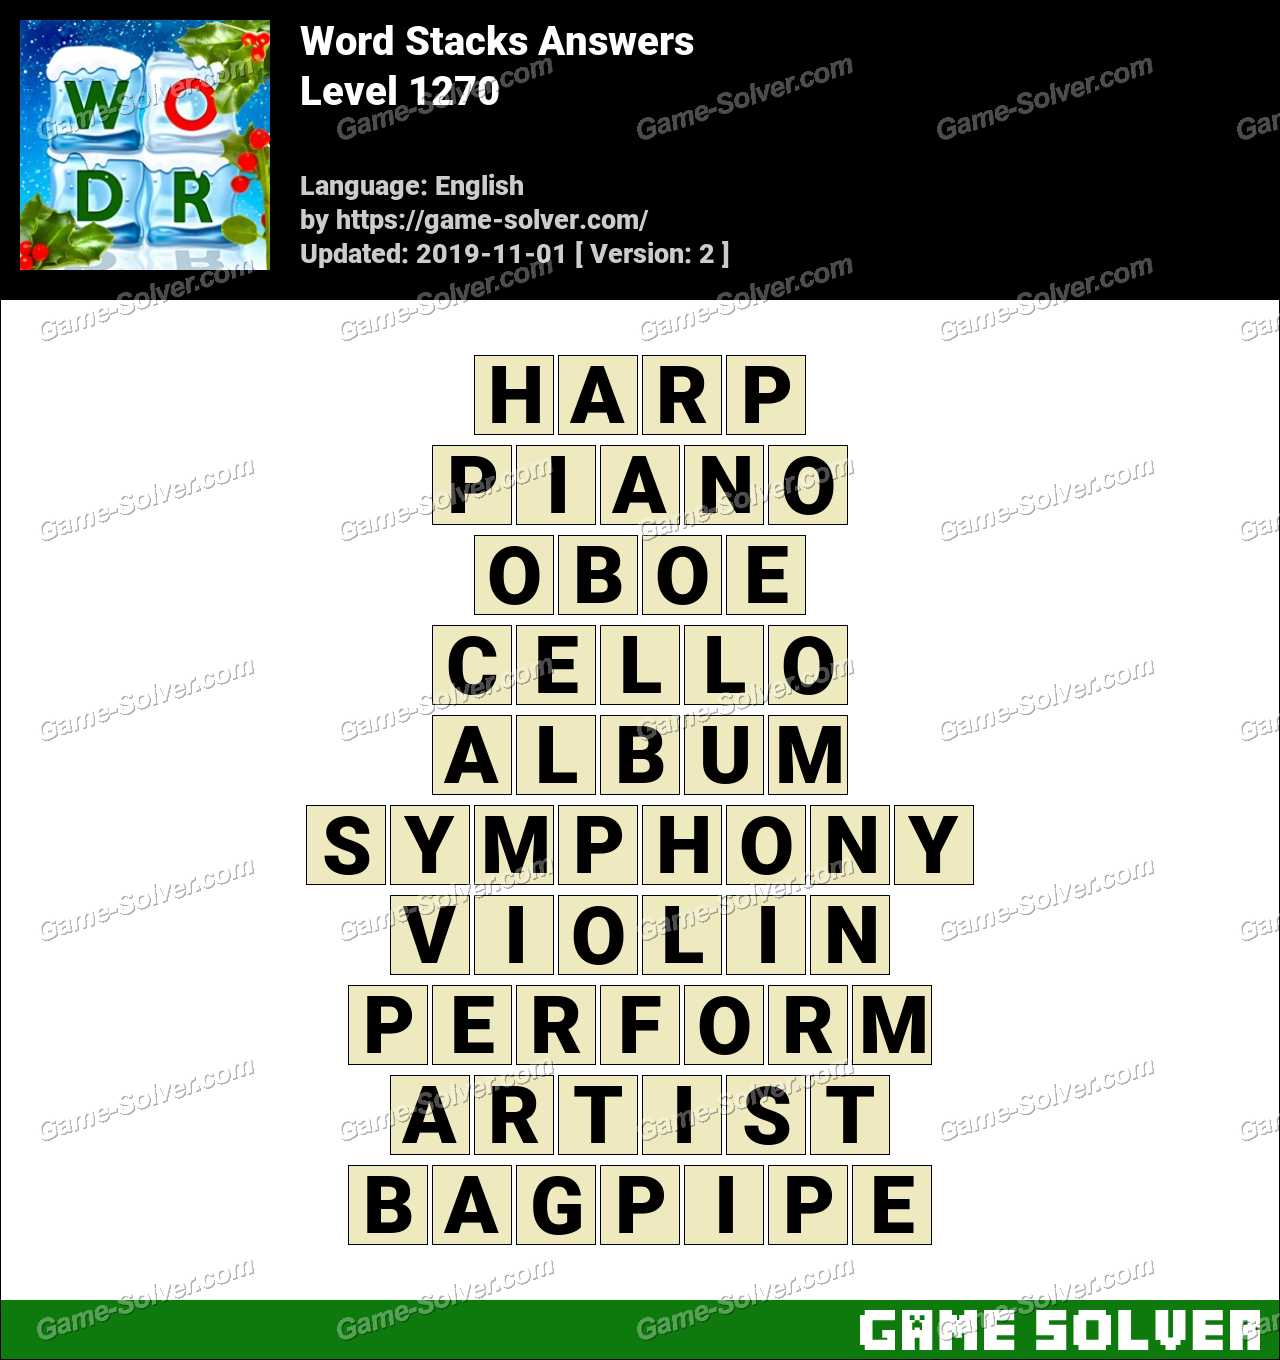 Word Stacks Level 1270 Answers